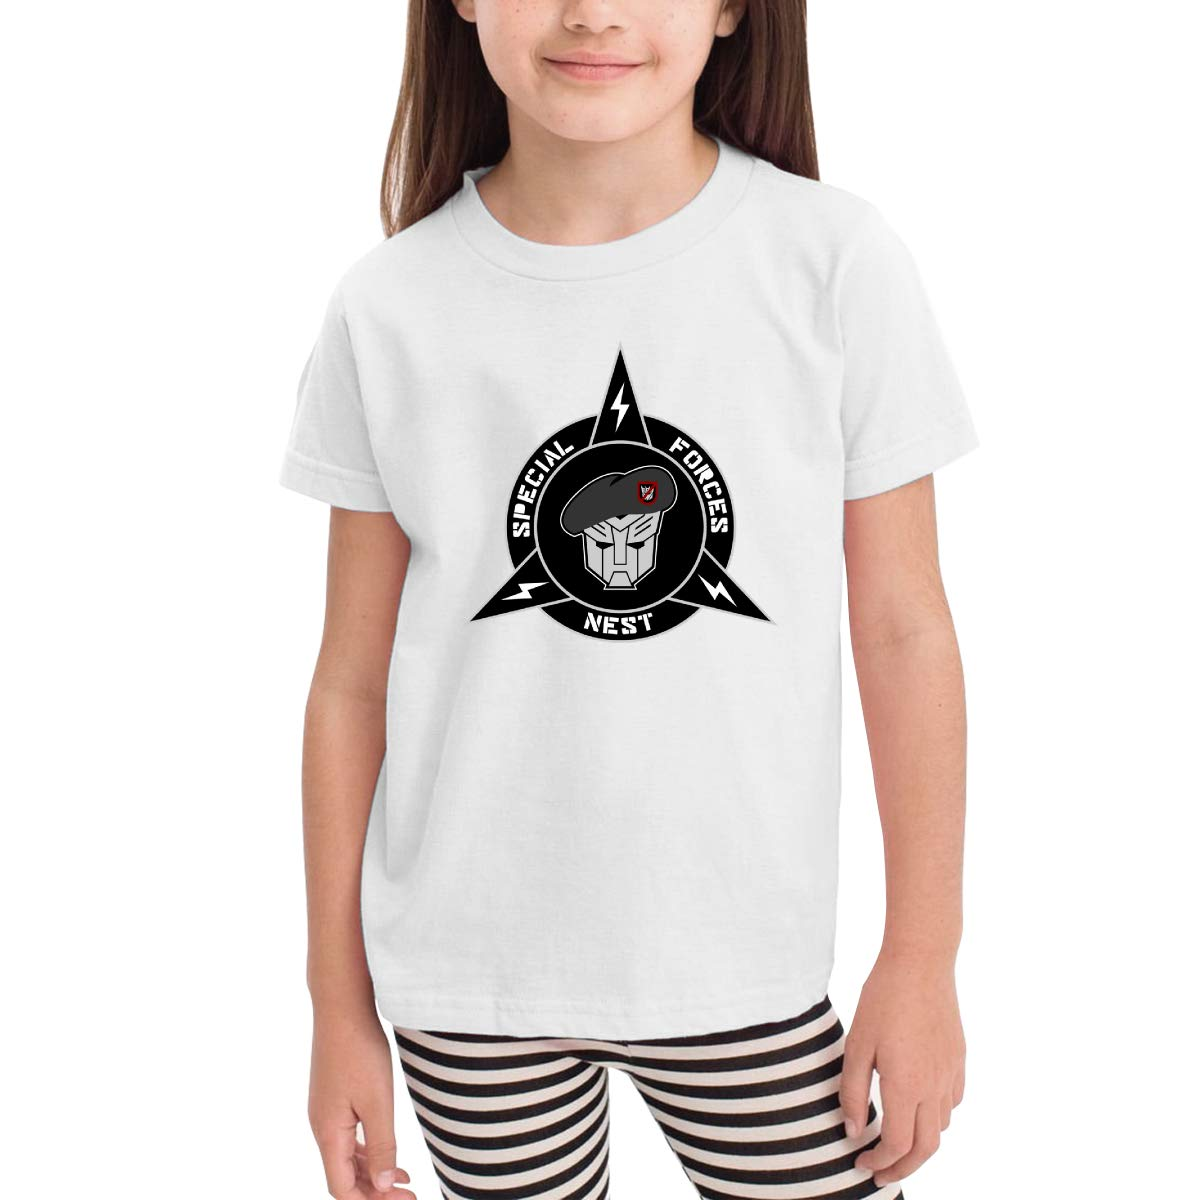 Onlybabycare Logo Special Forces 100/% Cotton Toddler Baby Boys Girls Kids Short Sleeve T Shirt Top Tee Clothes 2-6 T